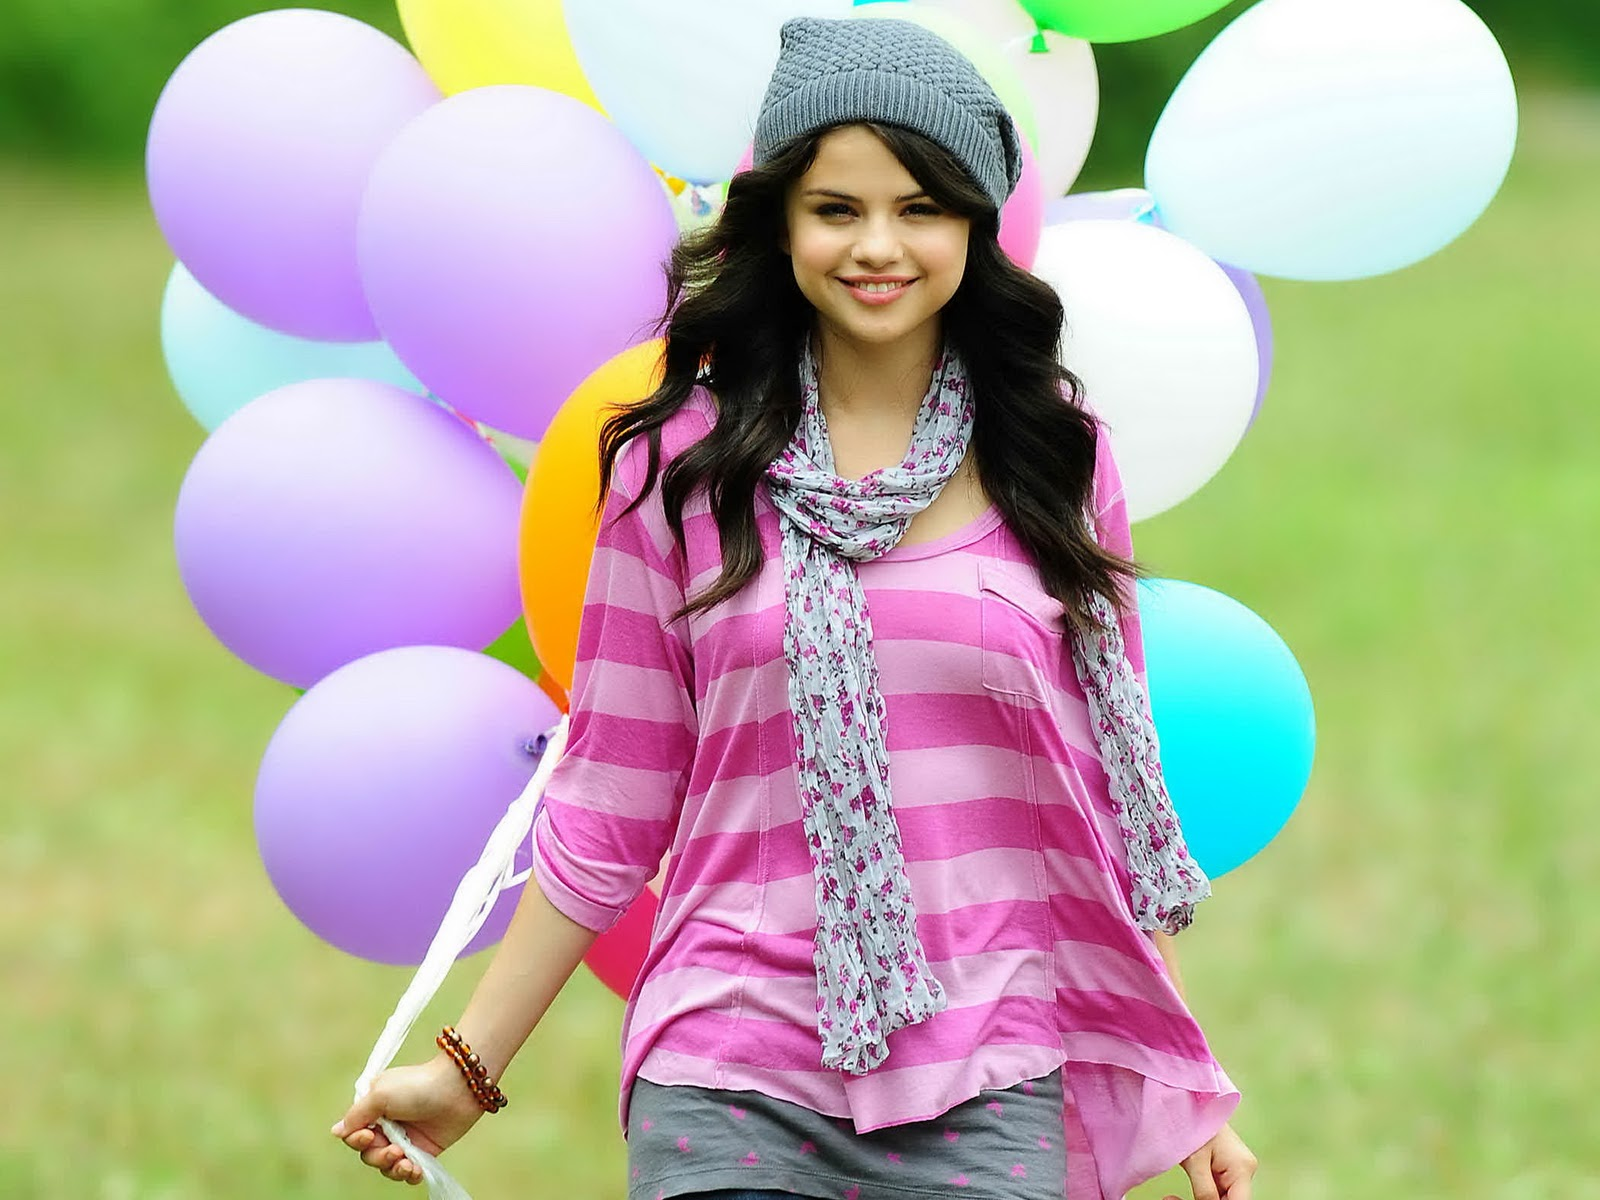 free selena gomez celebrity wallpaper - download online celebrities